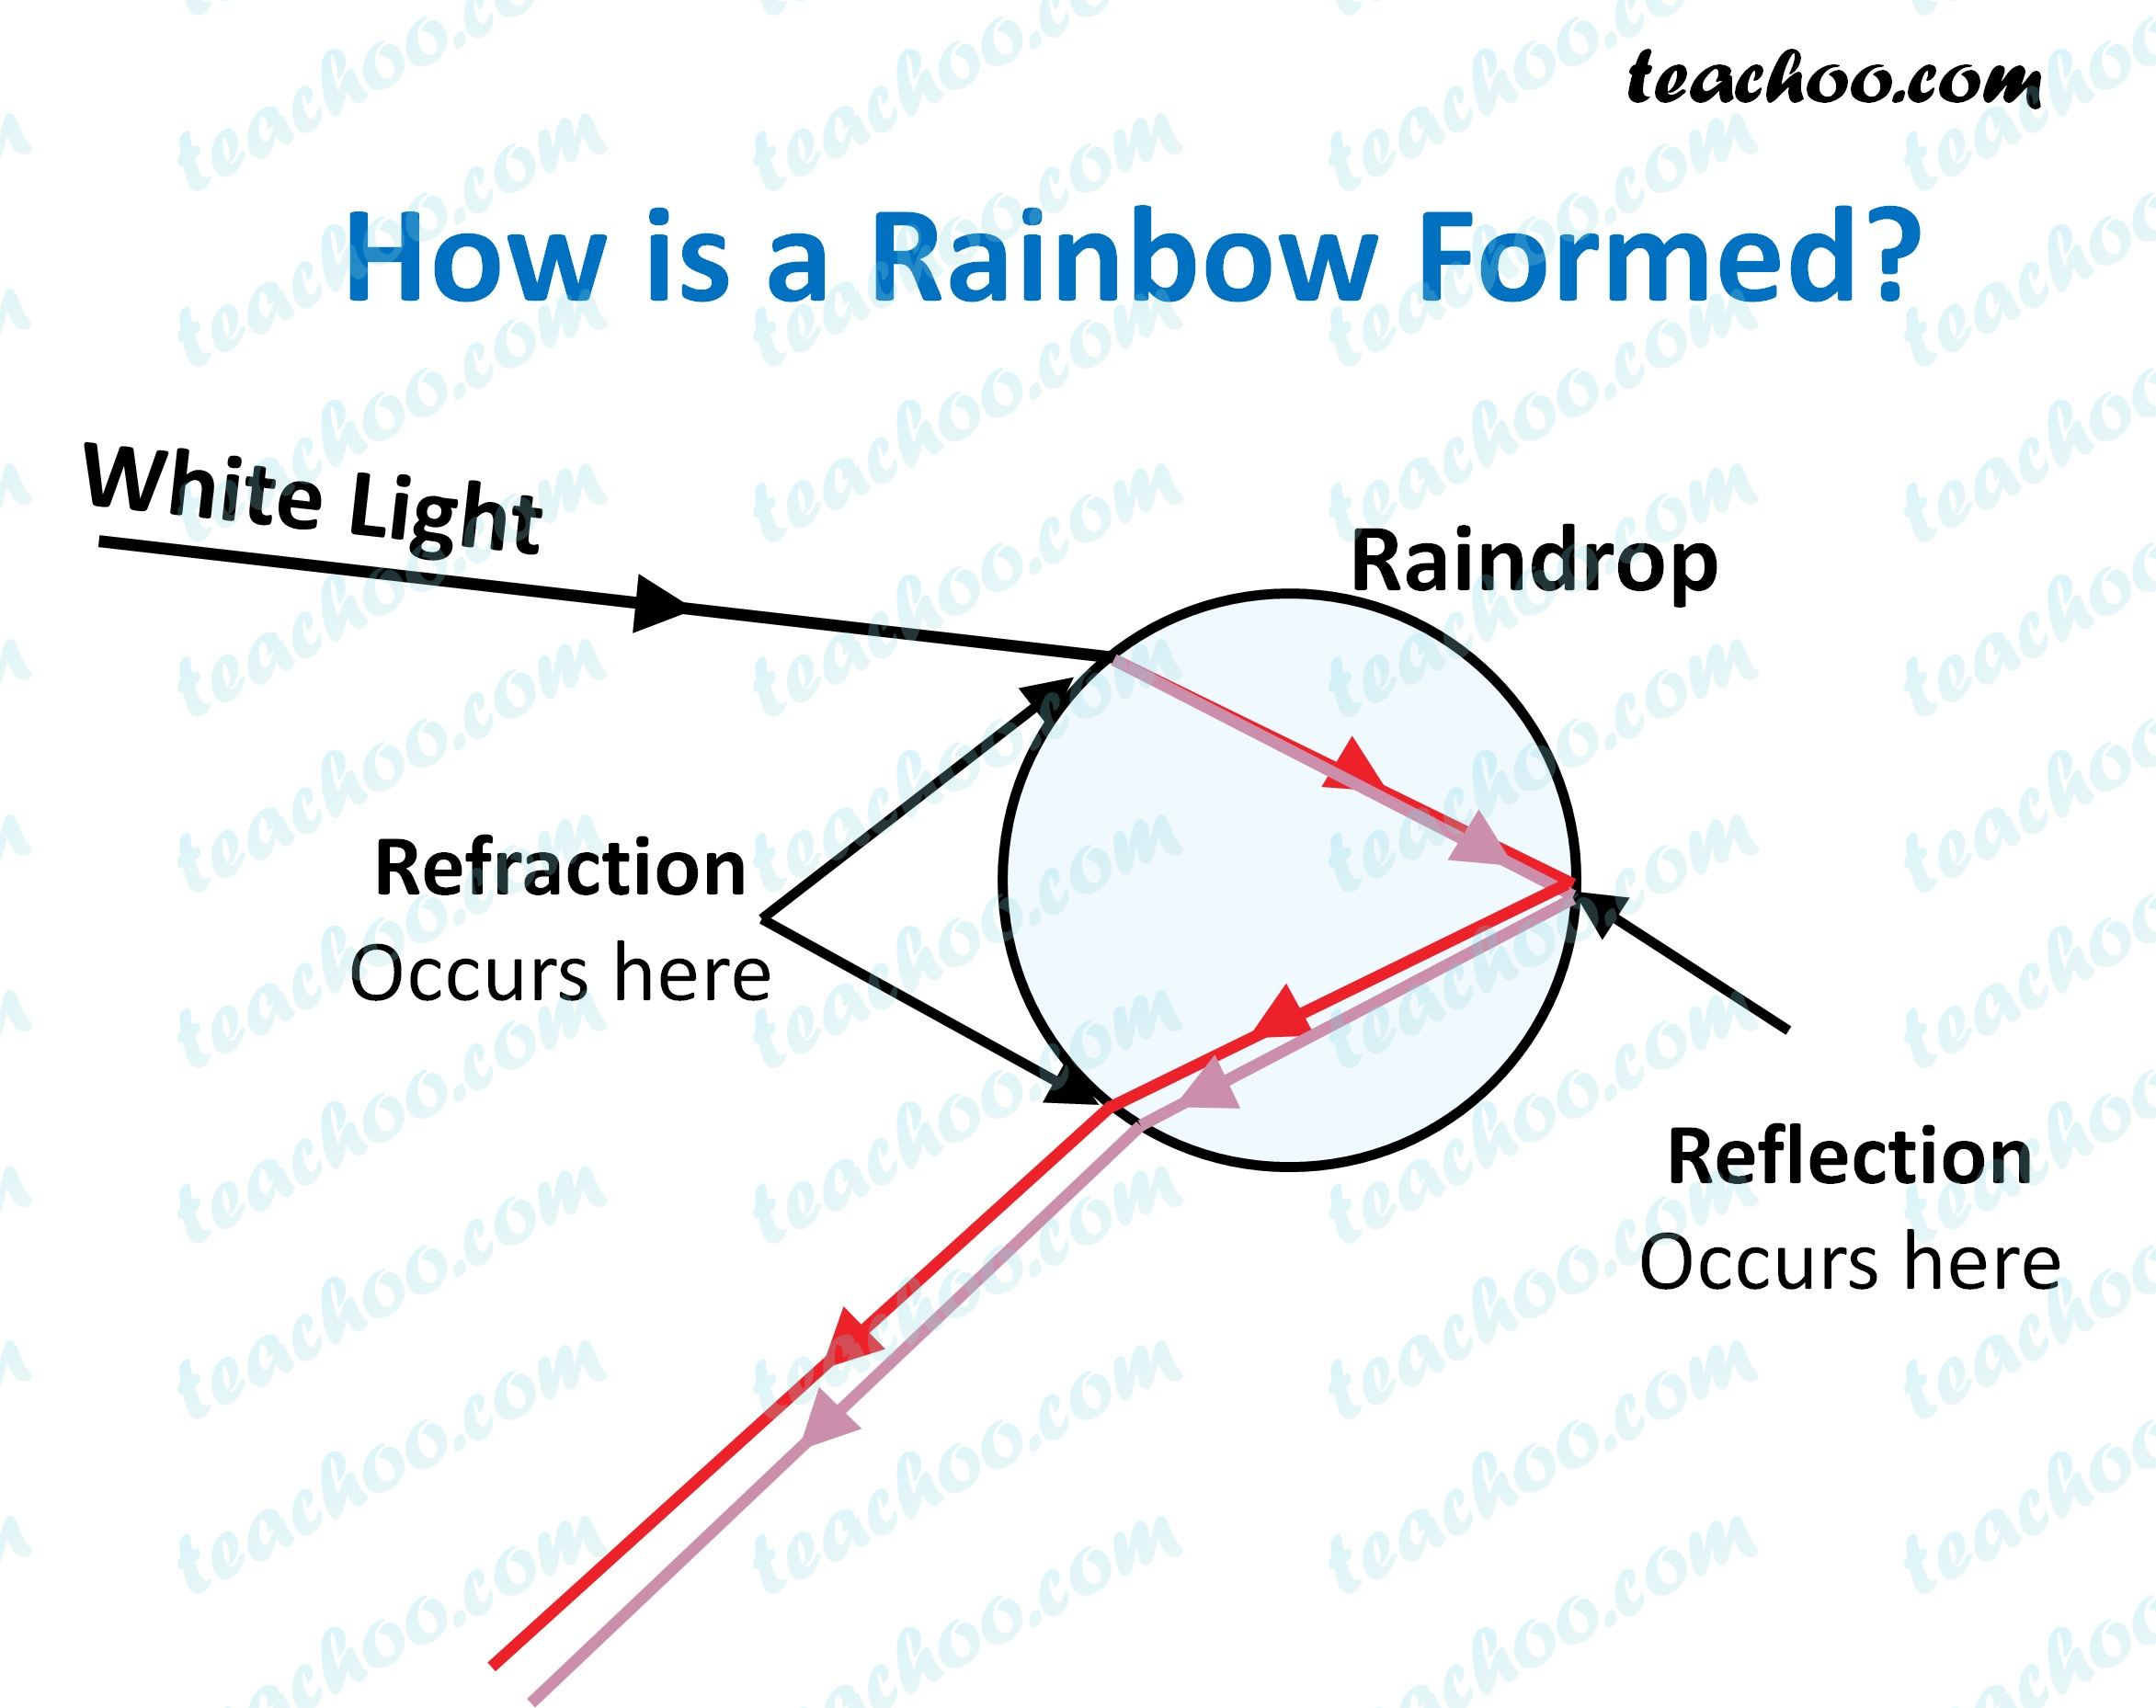 how-is-rainbow-formed---teachoo.jpg